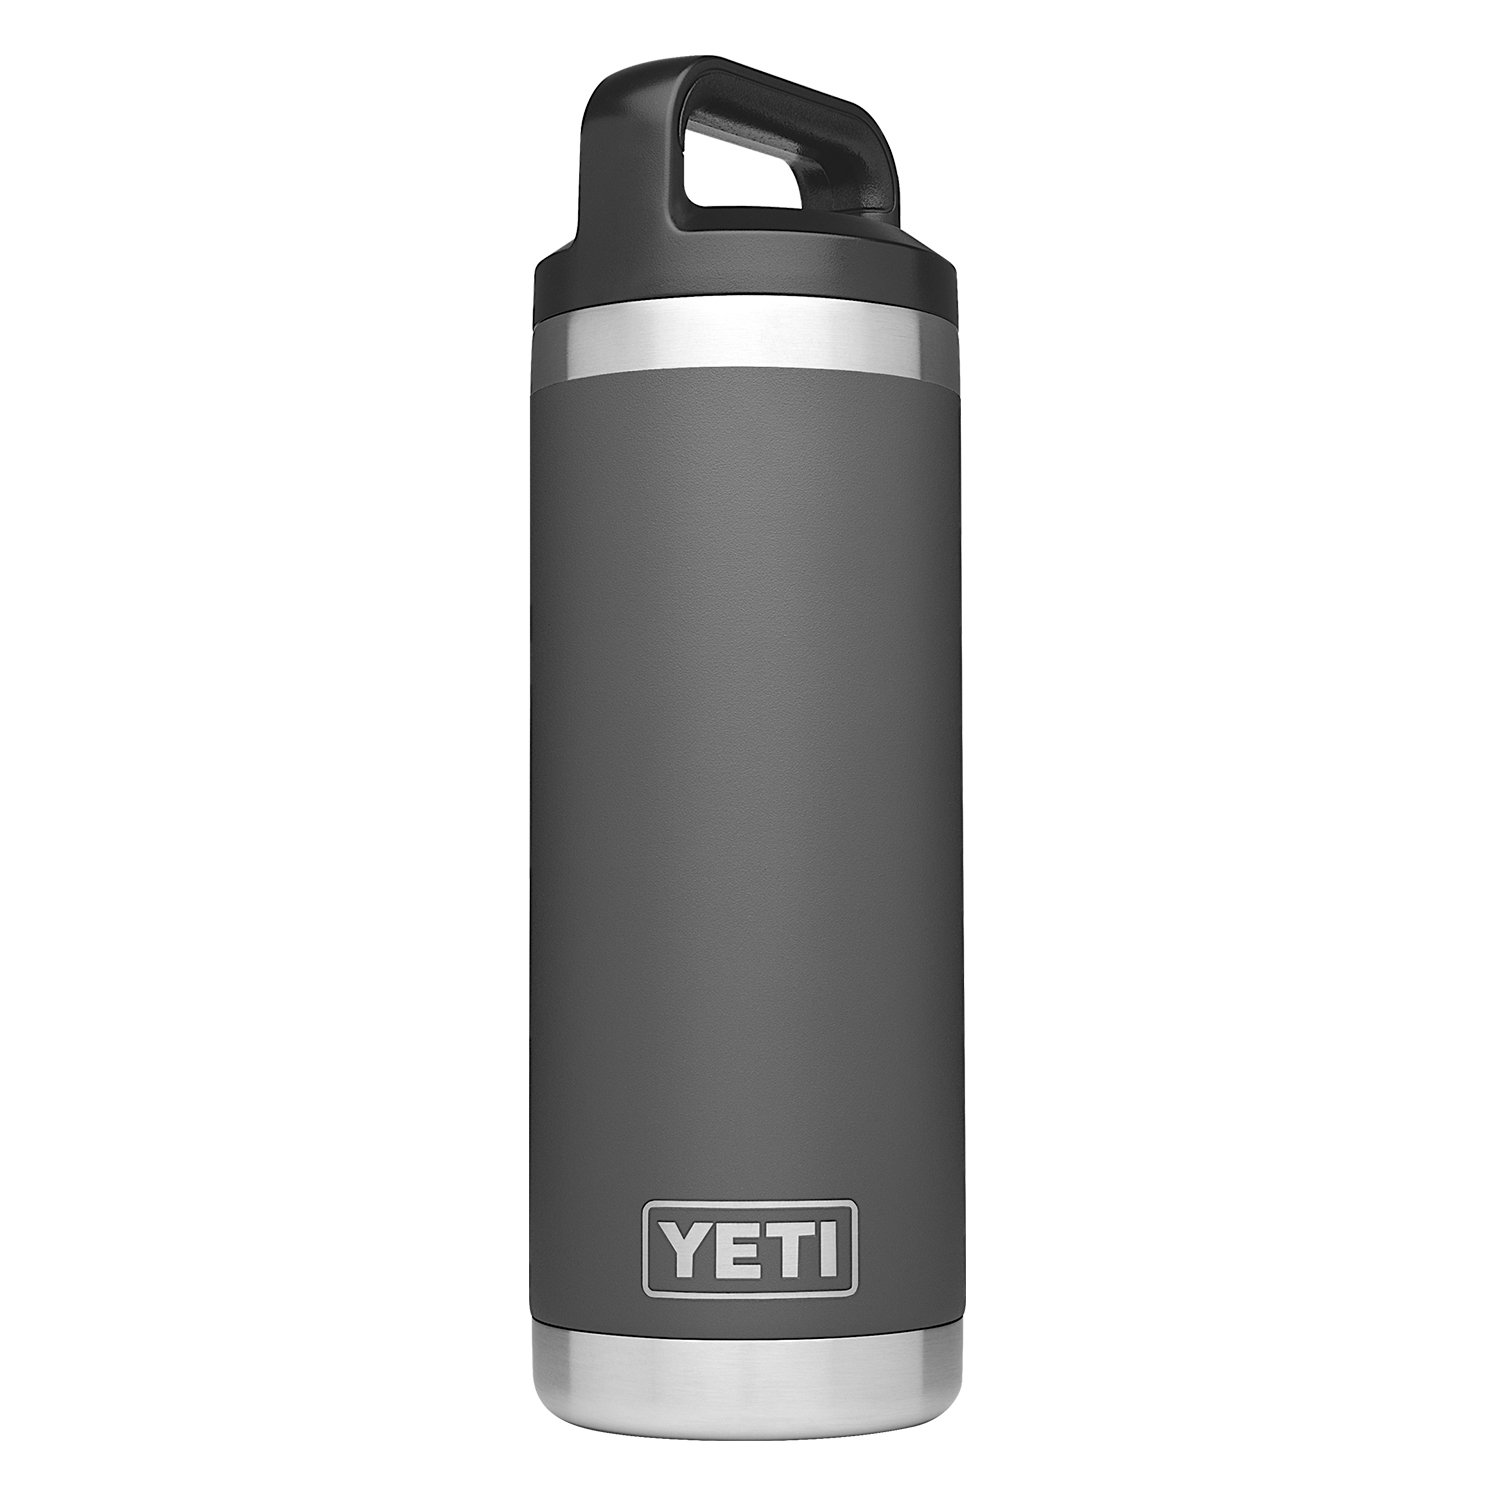 YETI Rambler 18 oz Stainless Steel Vacuum Insulated Bottle with Cap, Charcoal